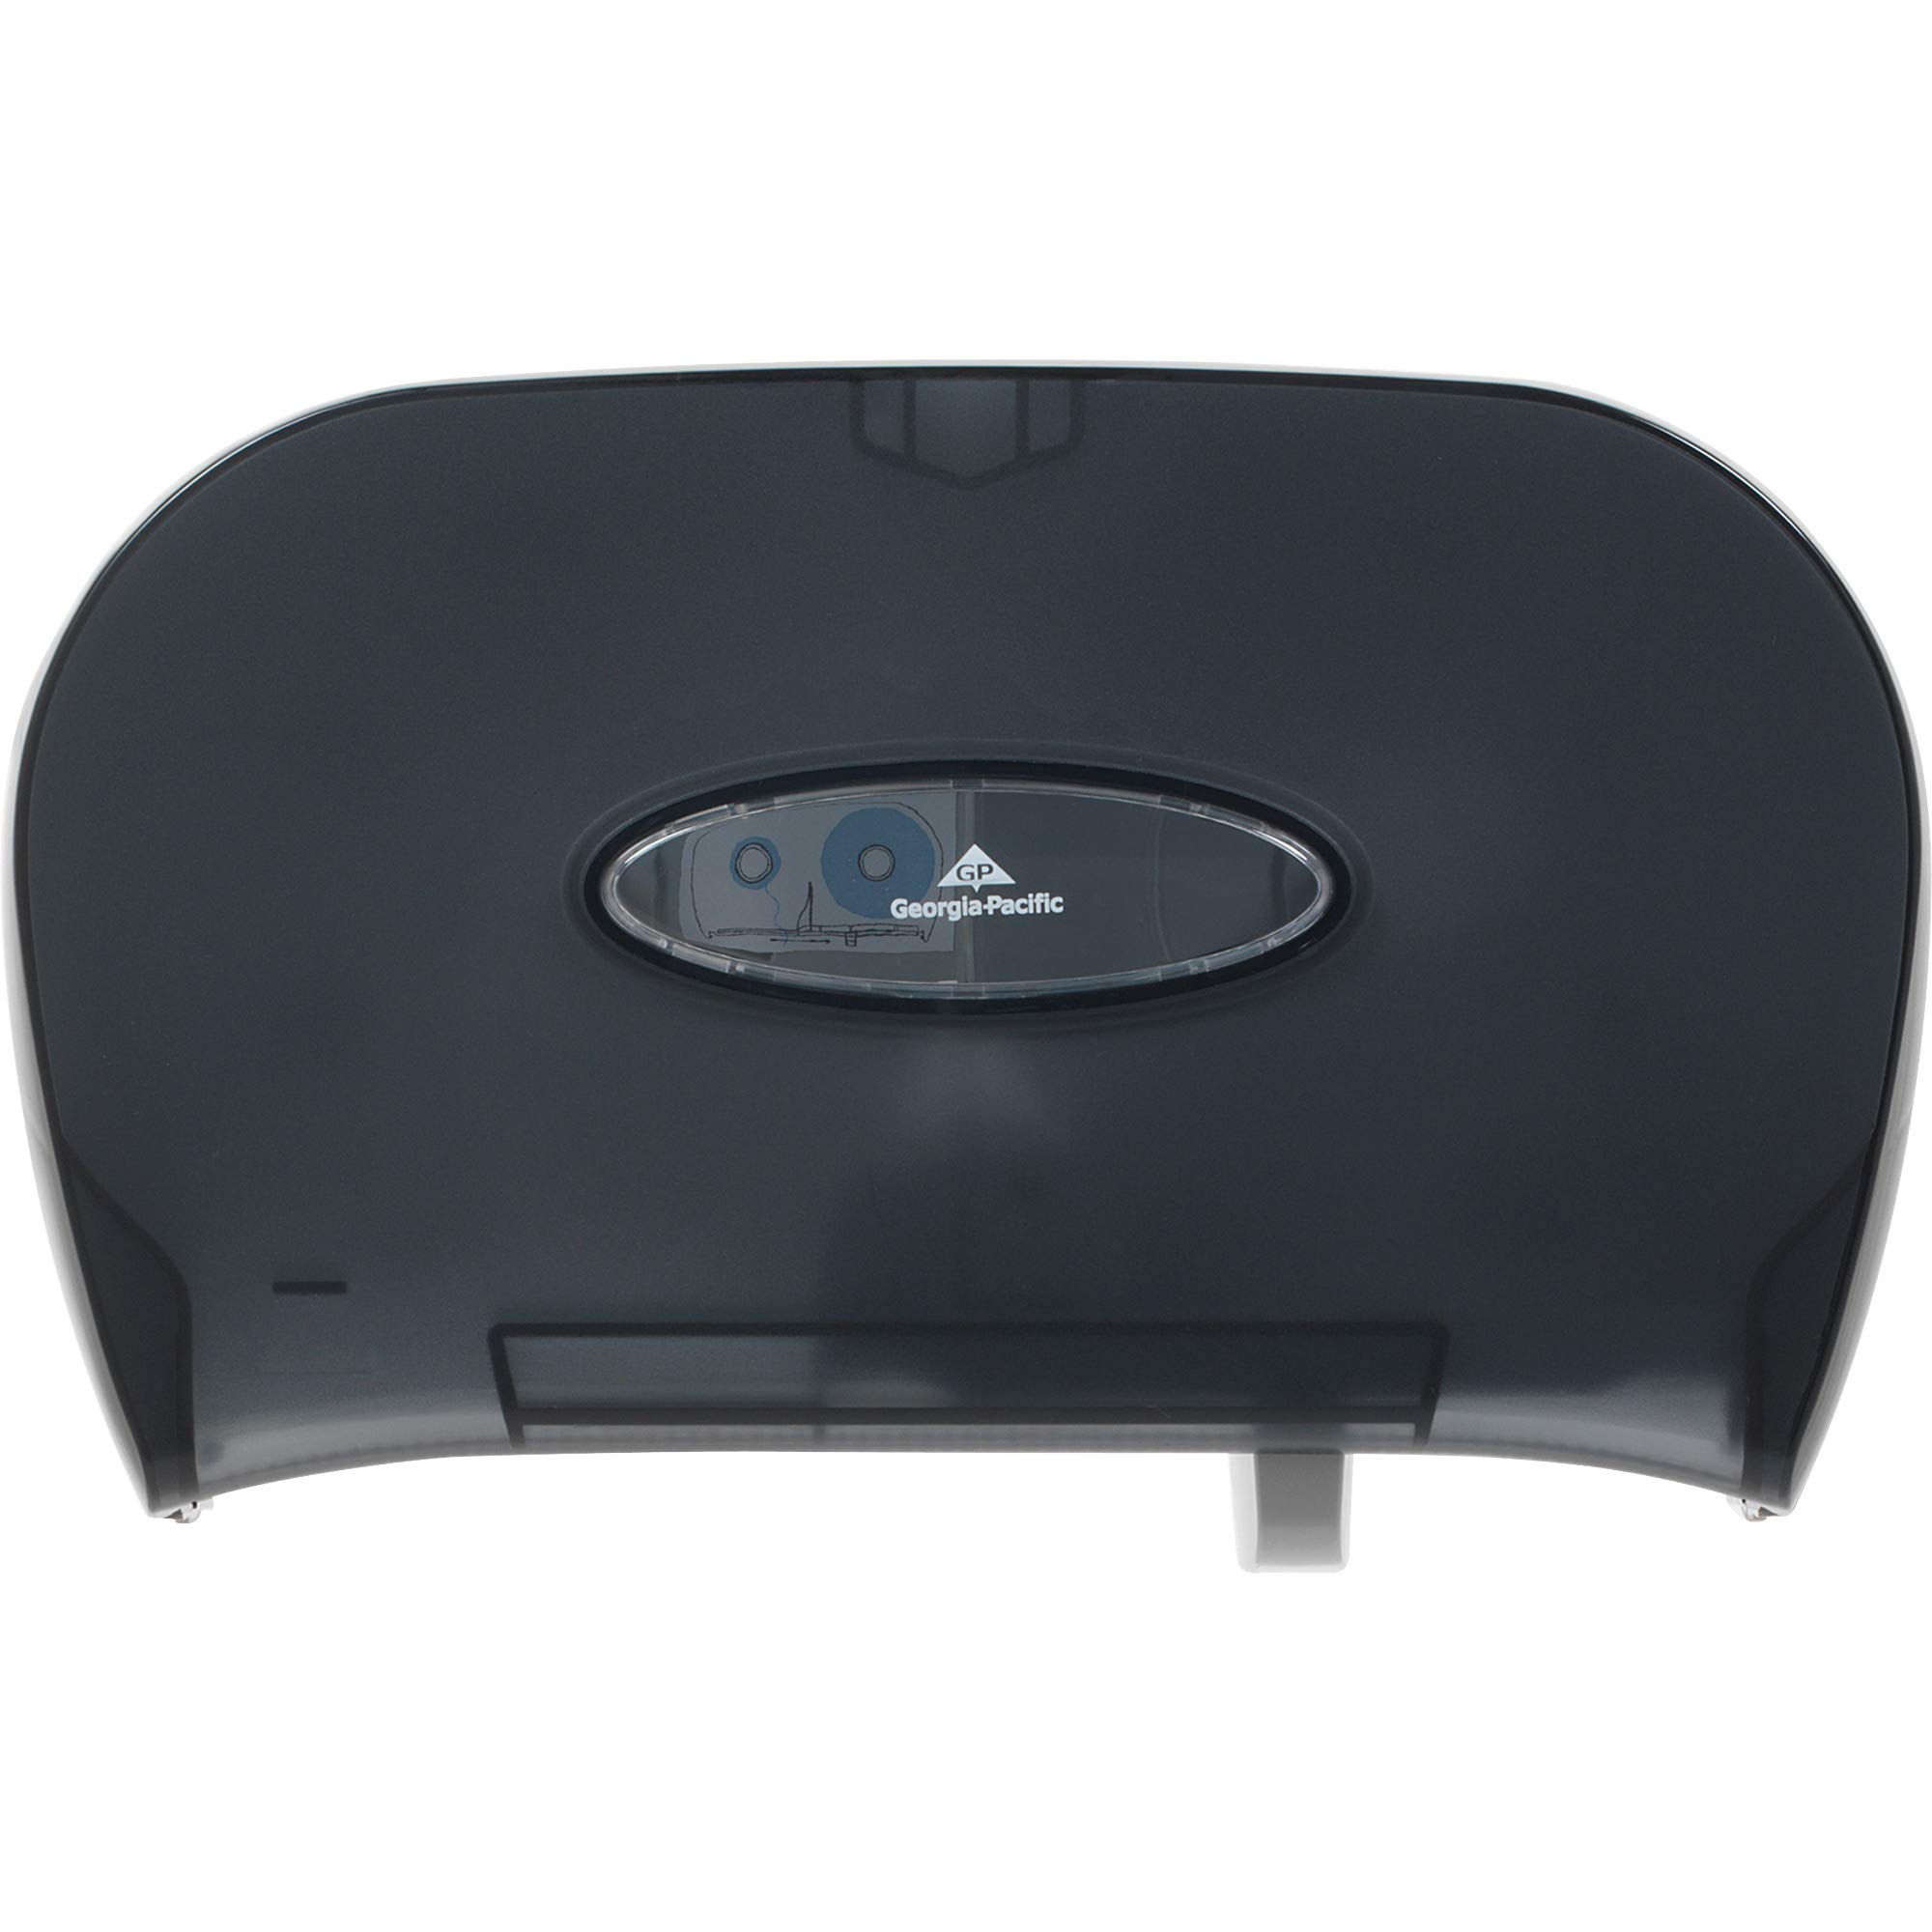 """Two Roll Side-by-Side Covered Single Roll Toilet Paper Dispenser by GP PRO (Georgia-Pacific), Translucent Smoke, 59206, 13.580"""" W x 5.730"""" D x 8.590"""" H"""